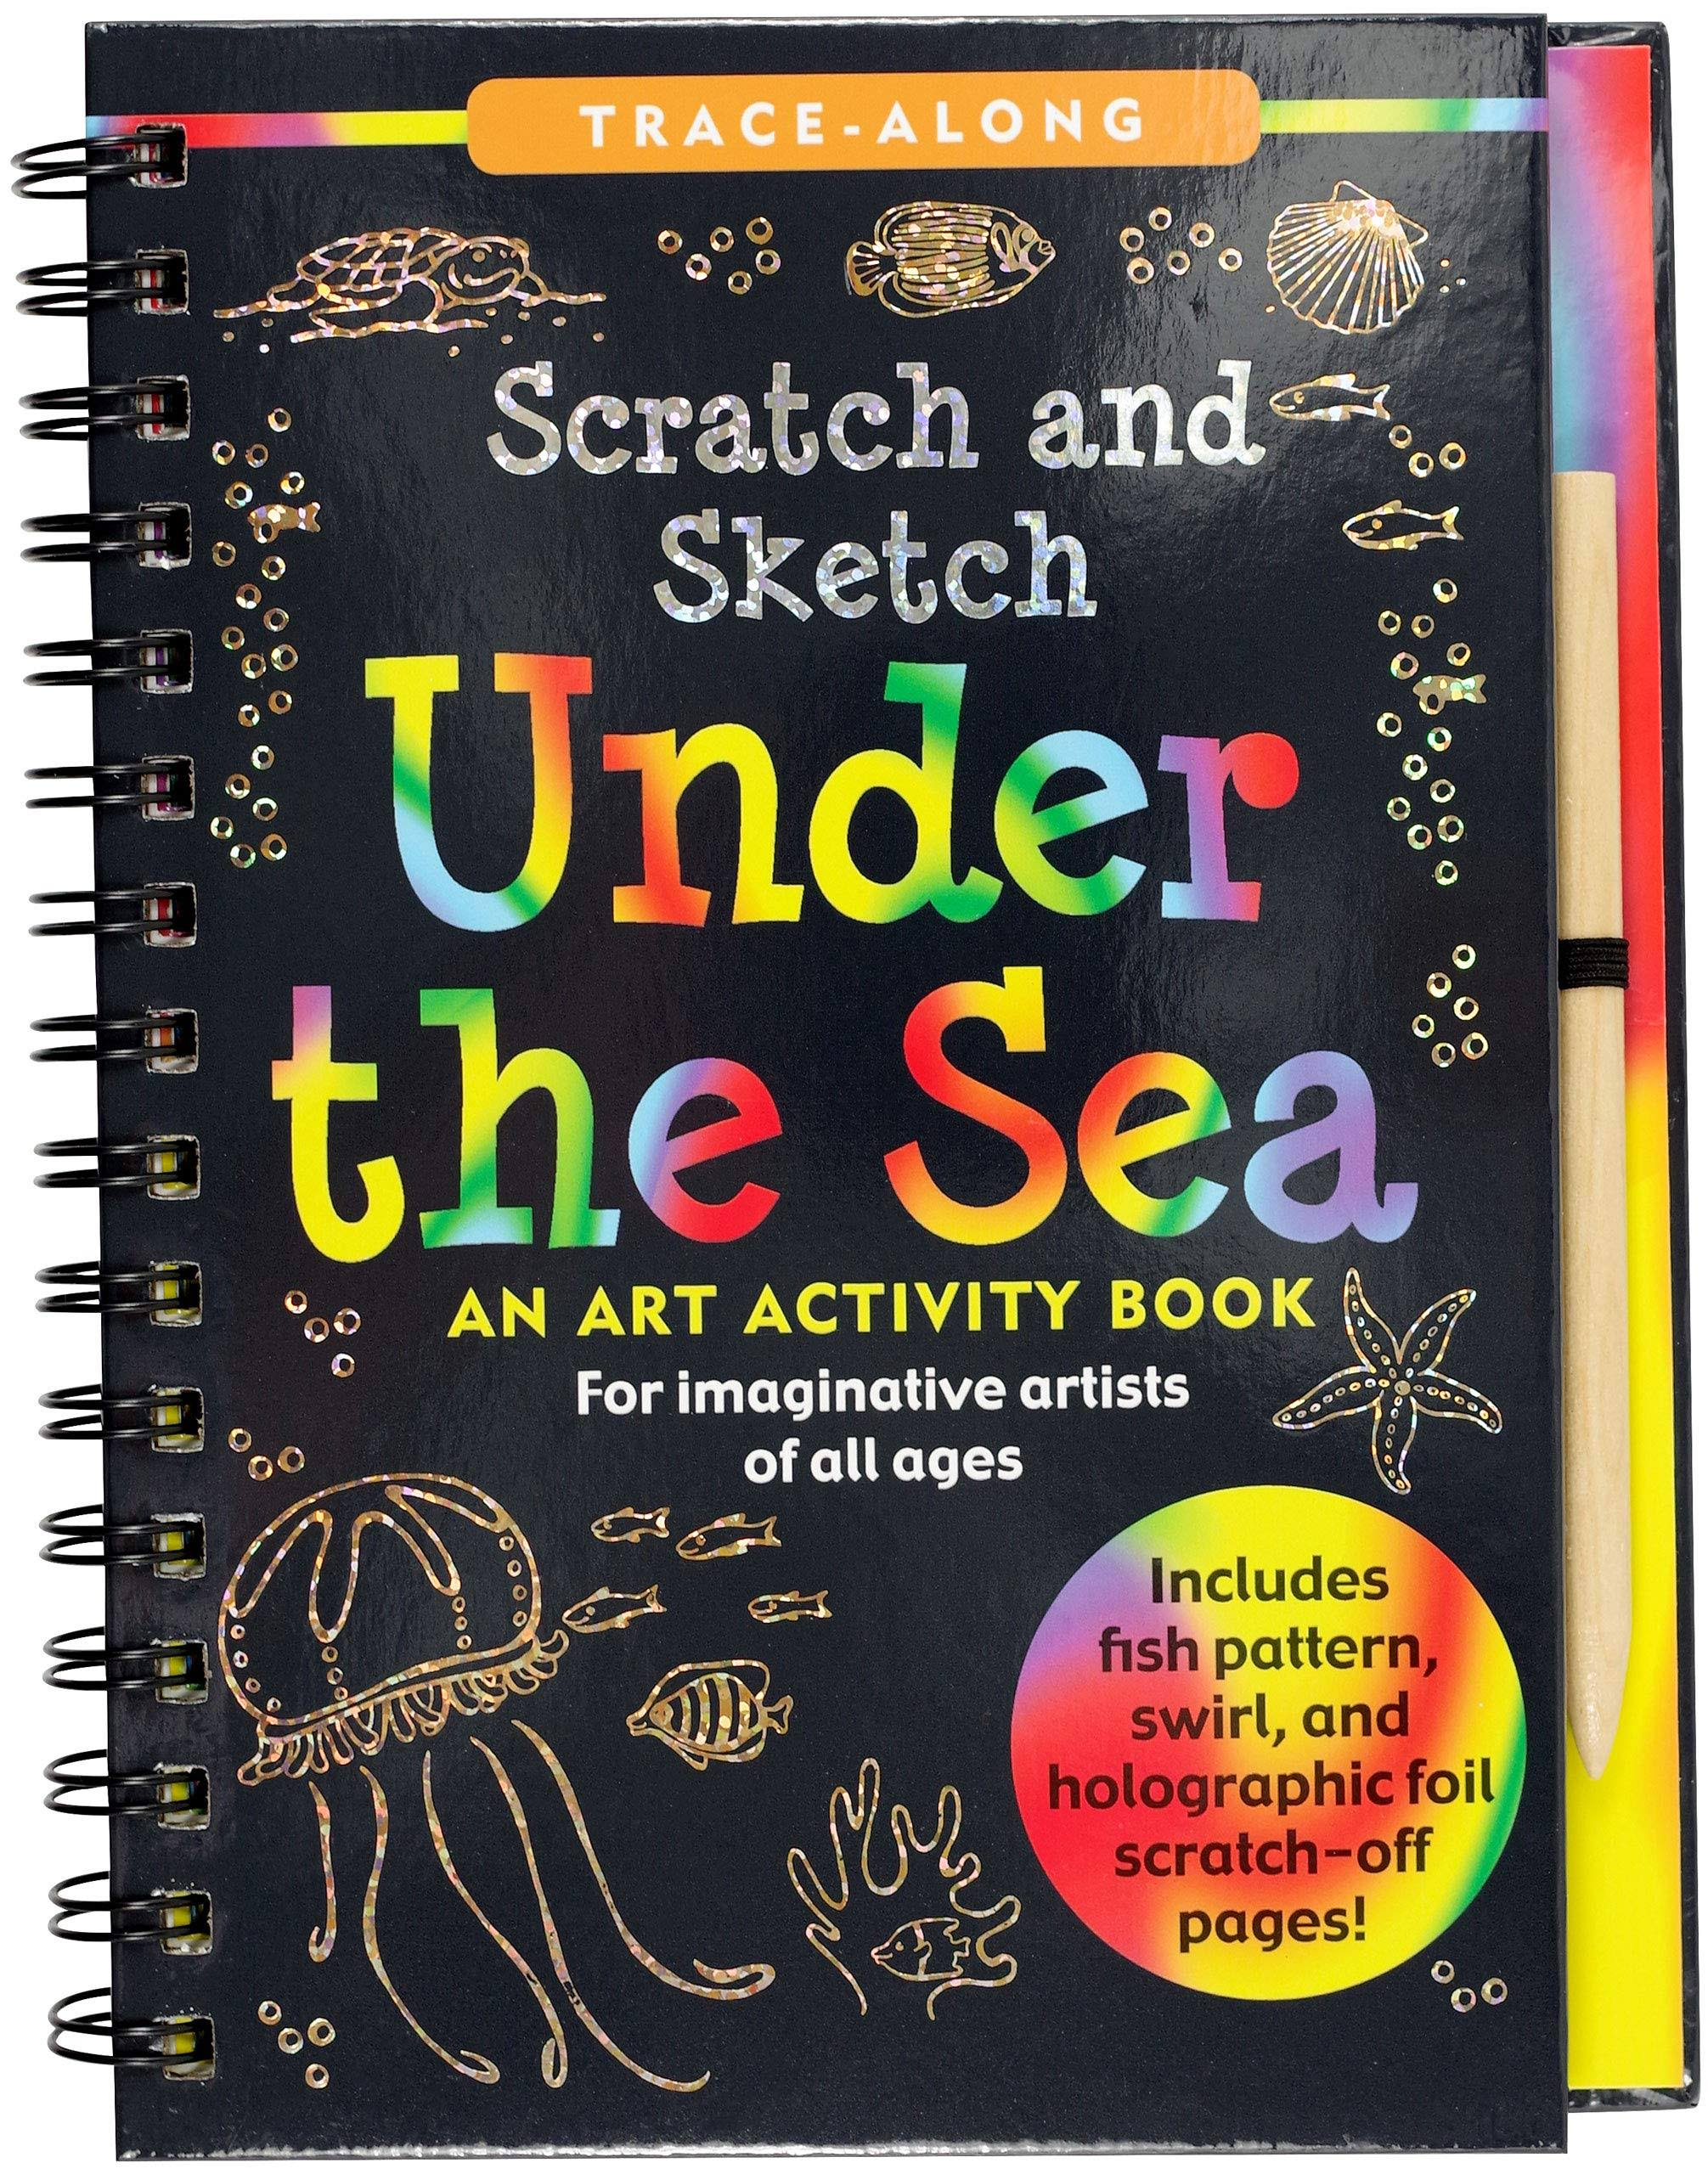 Scratch & Sketch Under the Sea: Trace Along [Book]